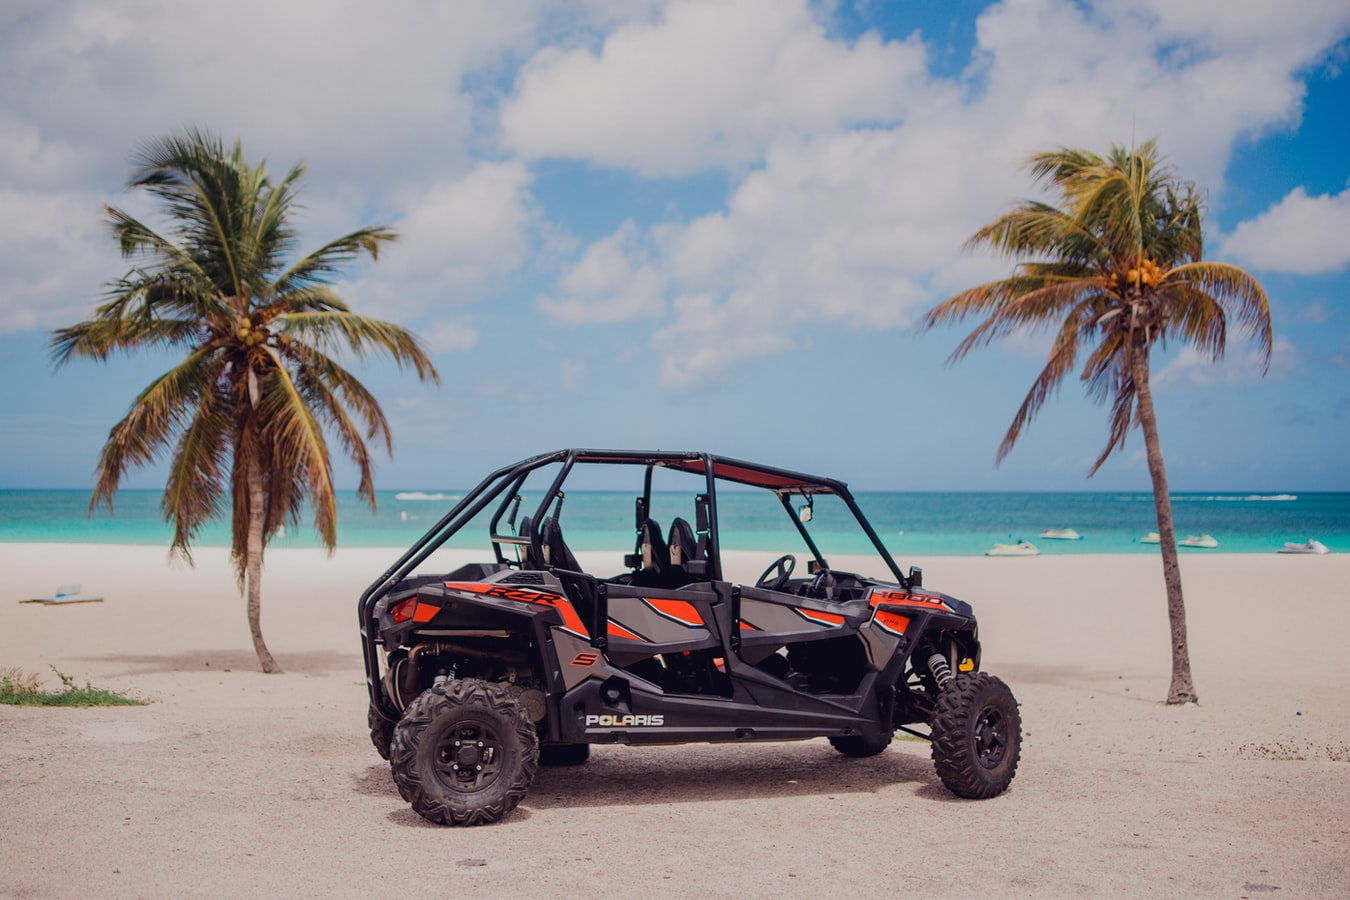 How To Improve Your Driving on Your UTV With New Tires